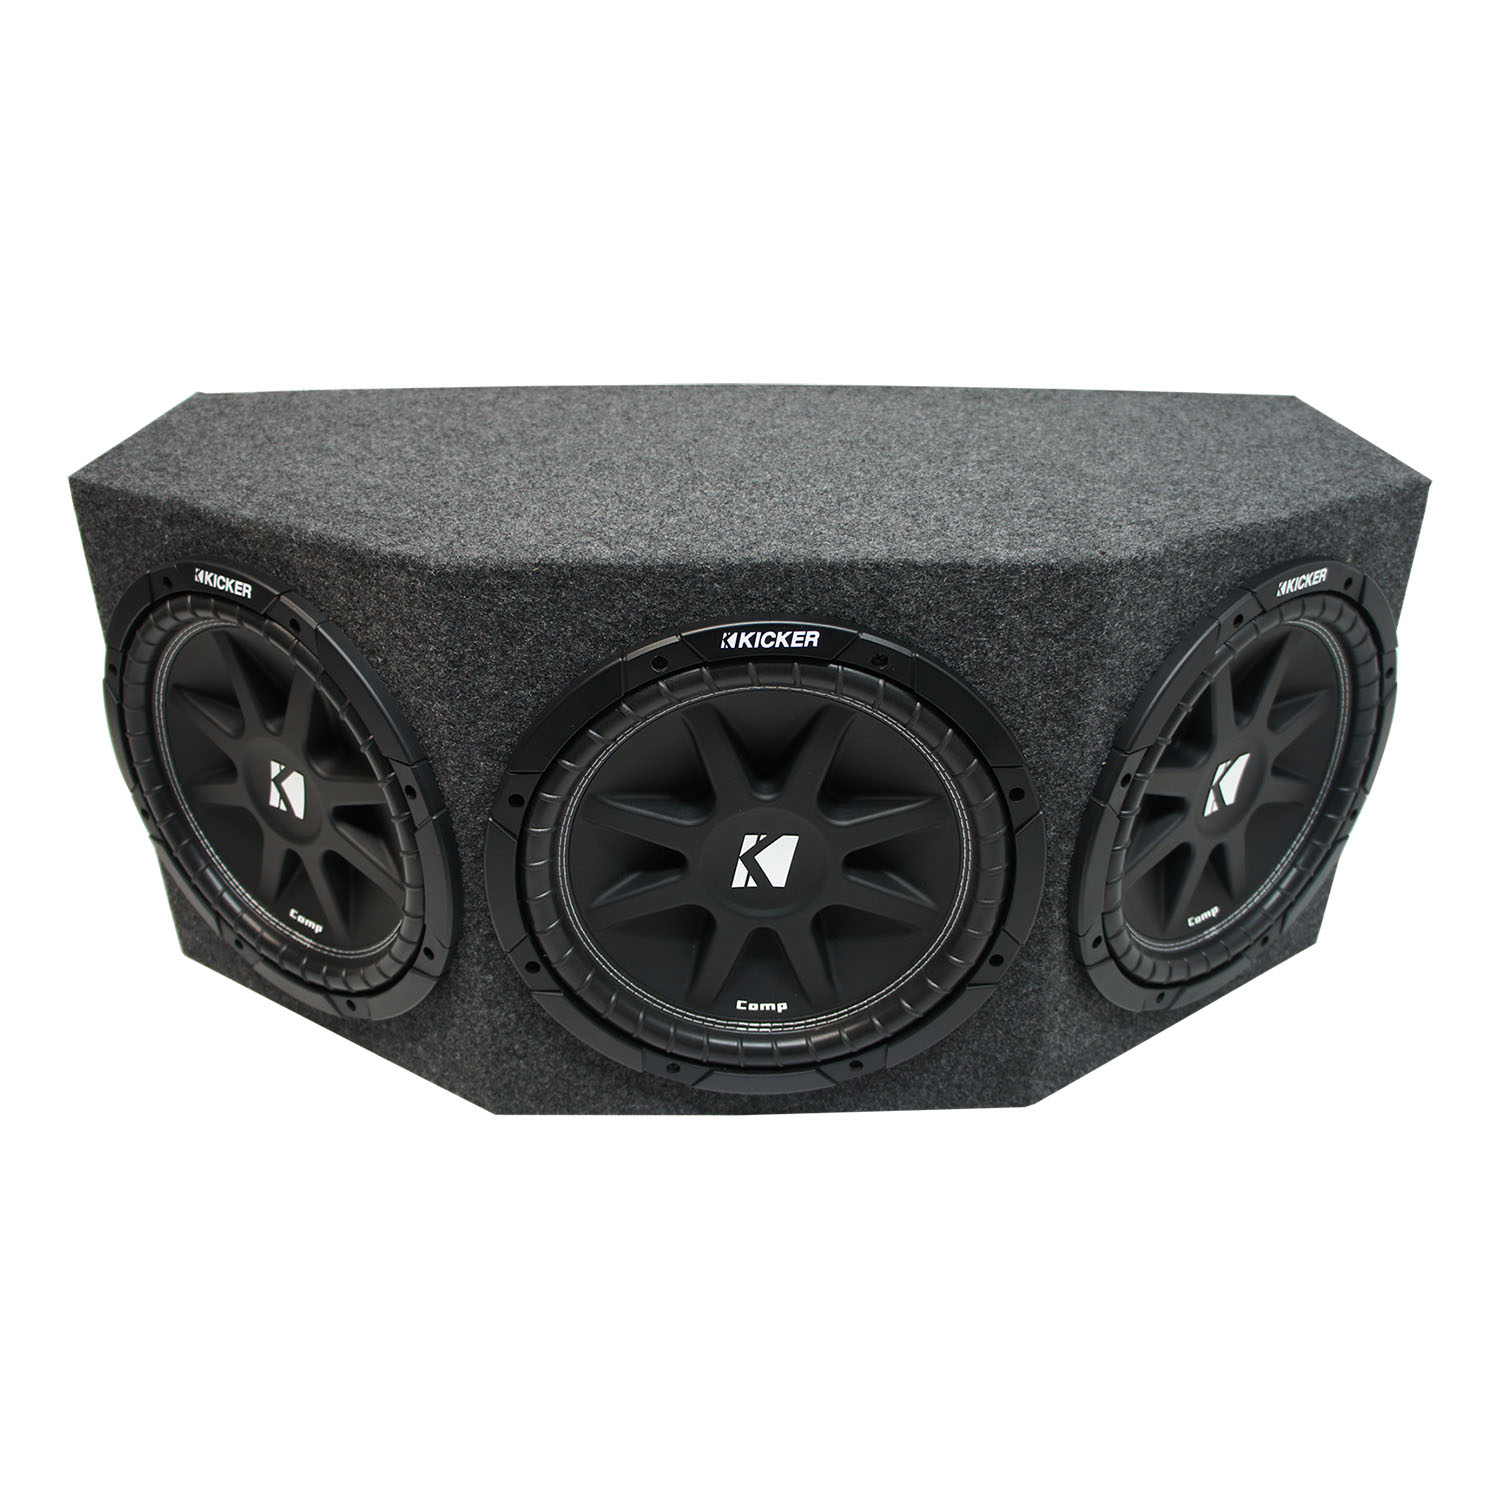 "Kicker Comp C12 Triple 12"" Subwoofer Loaded 900 Watt Sub Box - Final 1.3 Ohm"